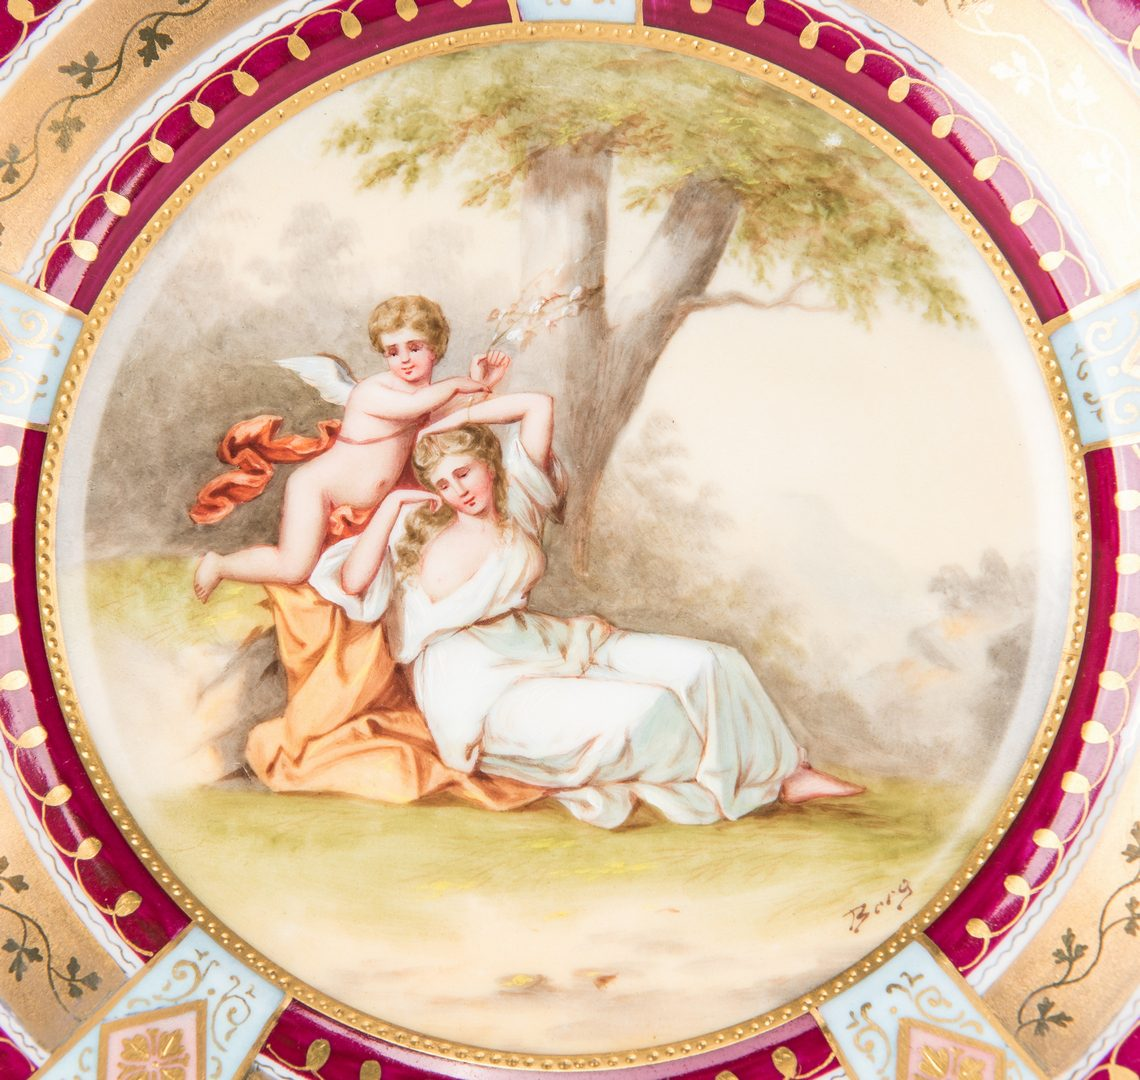 Lot 226: Pr. Royal Vienna Cabinet Plates, Berg and Bauer